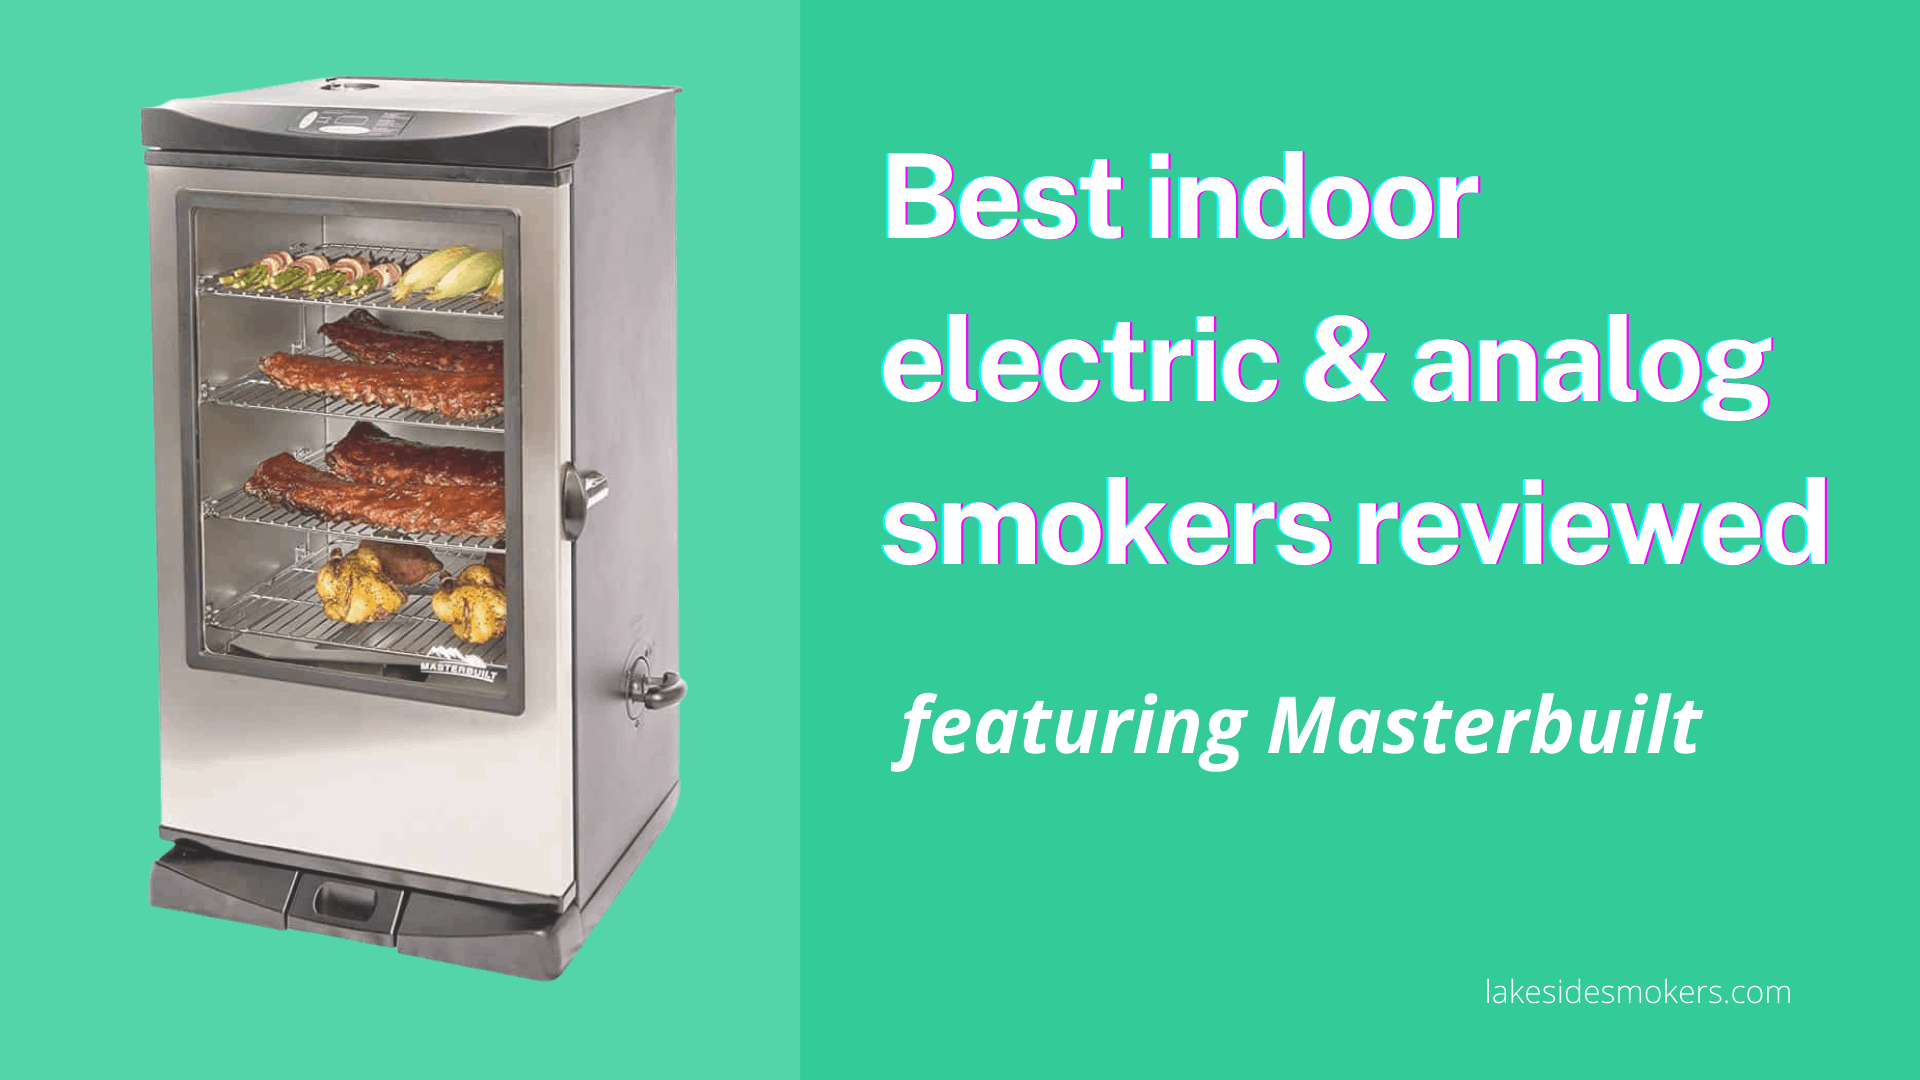 Best indoor electric & analog smokers reviewed featuring Masterbuilt